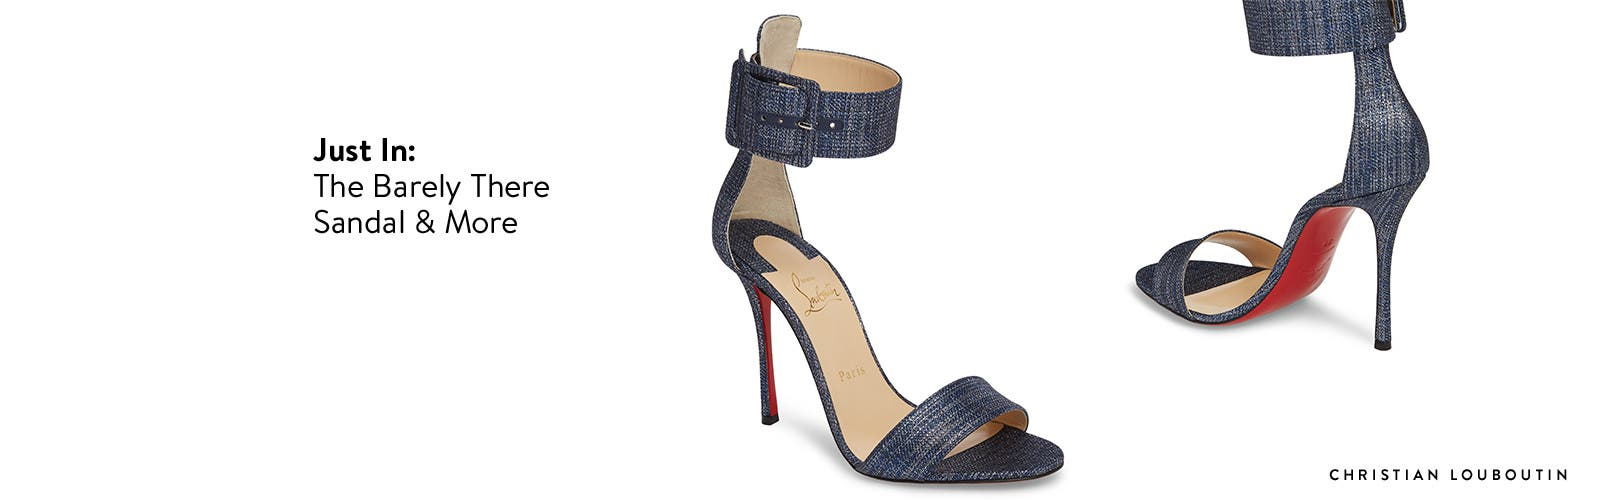 Just in: the barely there sandal from Christian Louboutin and more.